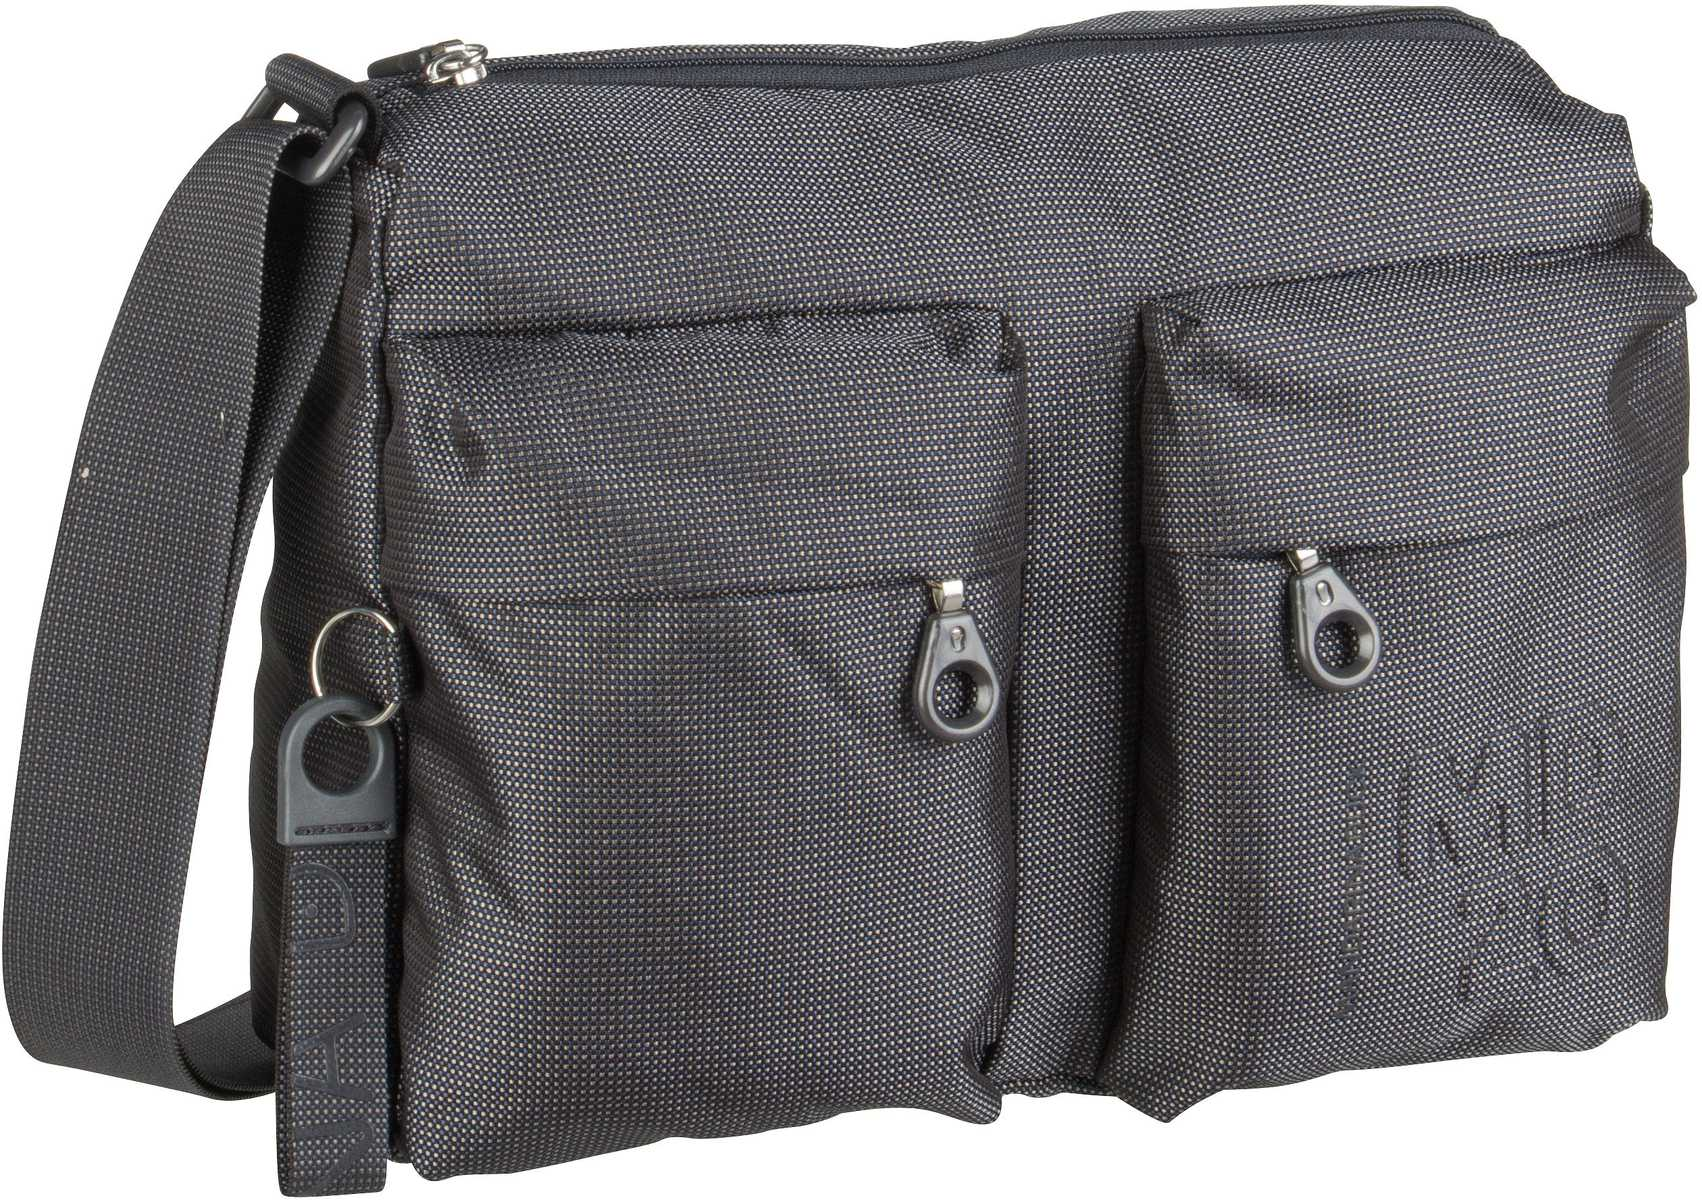 Umhängetasche MD20 Crossover Bag QMTT5 Steel